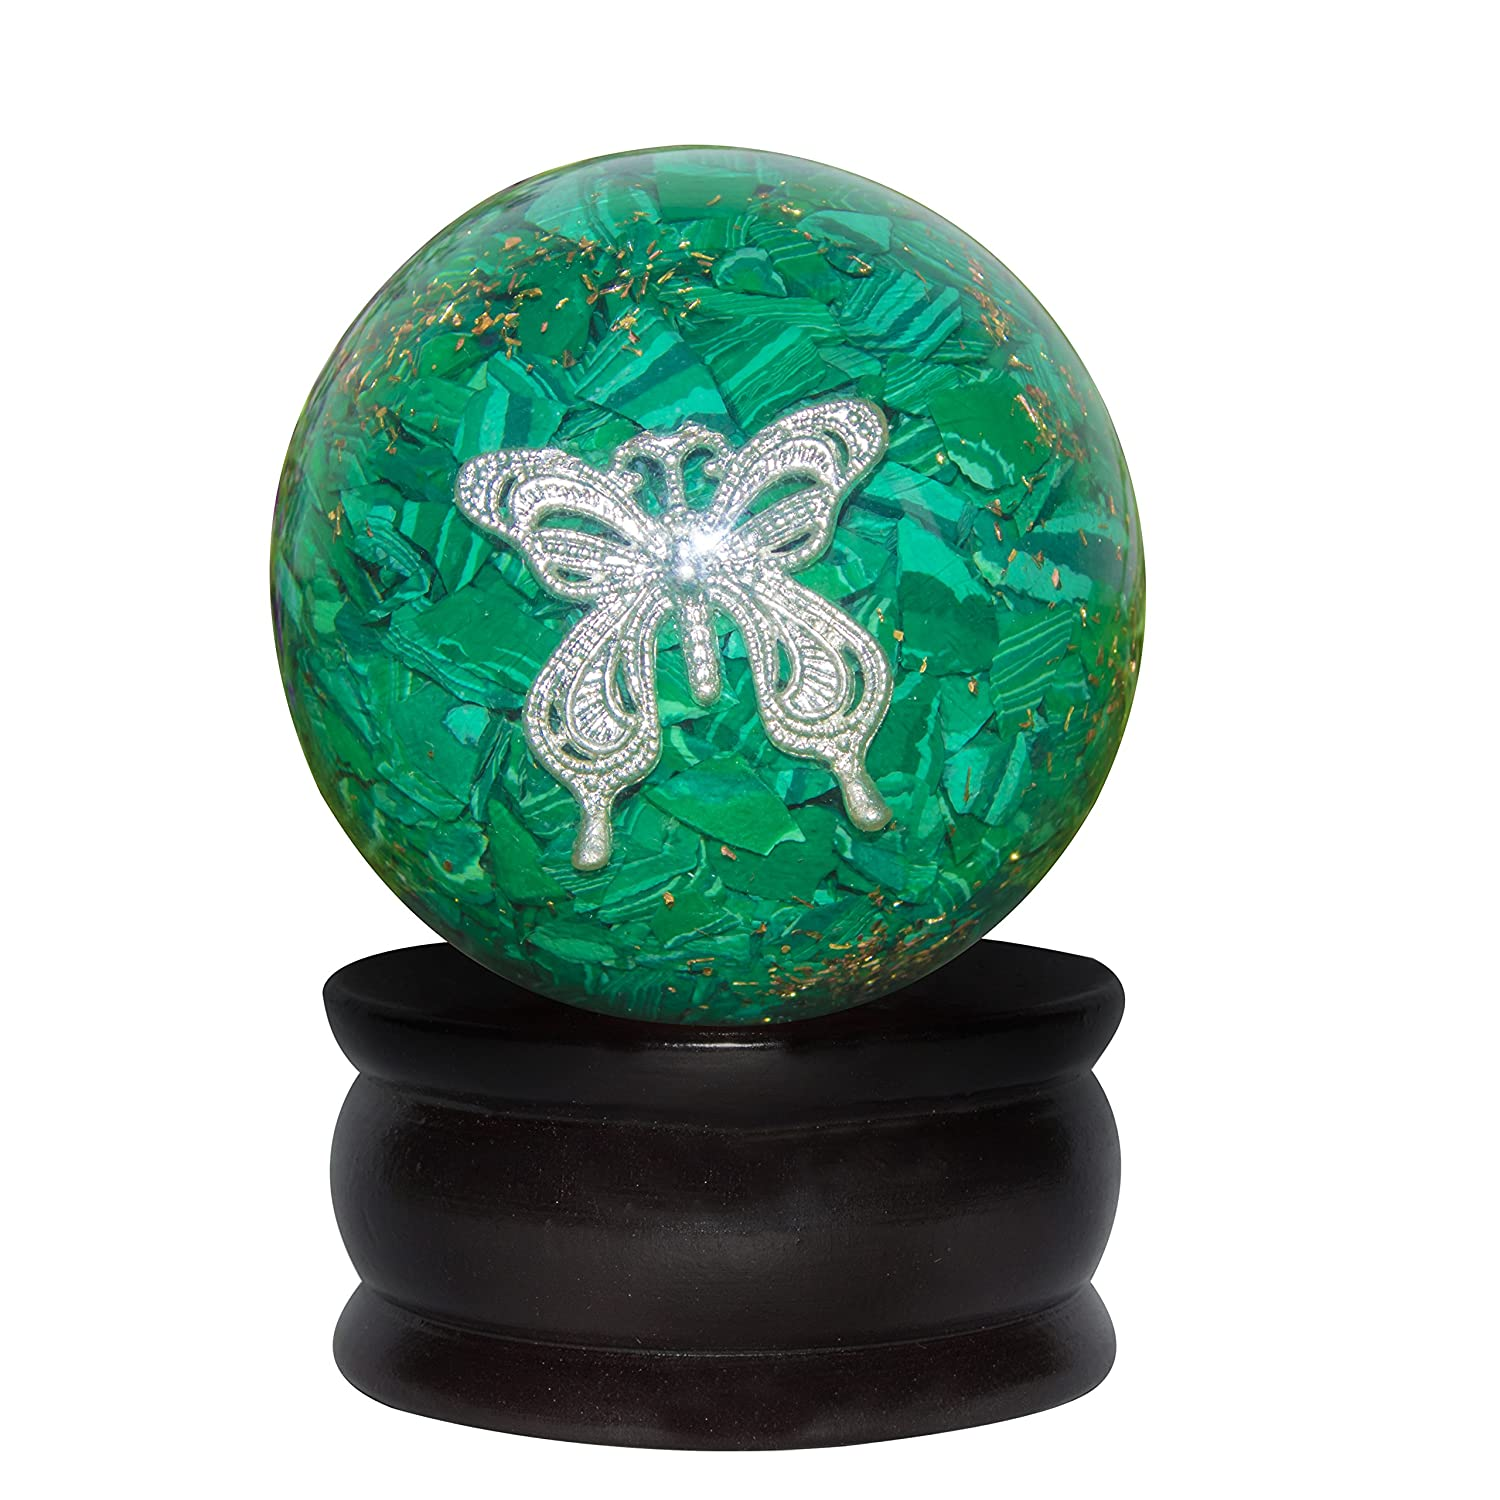 CROCON Green Malachite Orgone Sphere Ball Butterfly Symbol Energy Generator For Reiki Healing Chakra Balancing & EMF Protection Size: 50-55mm